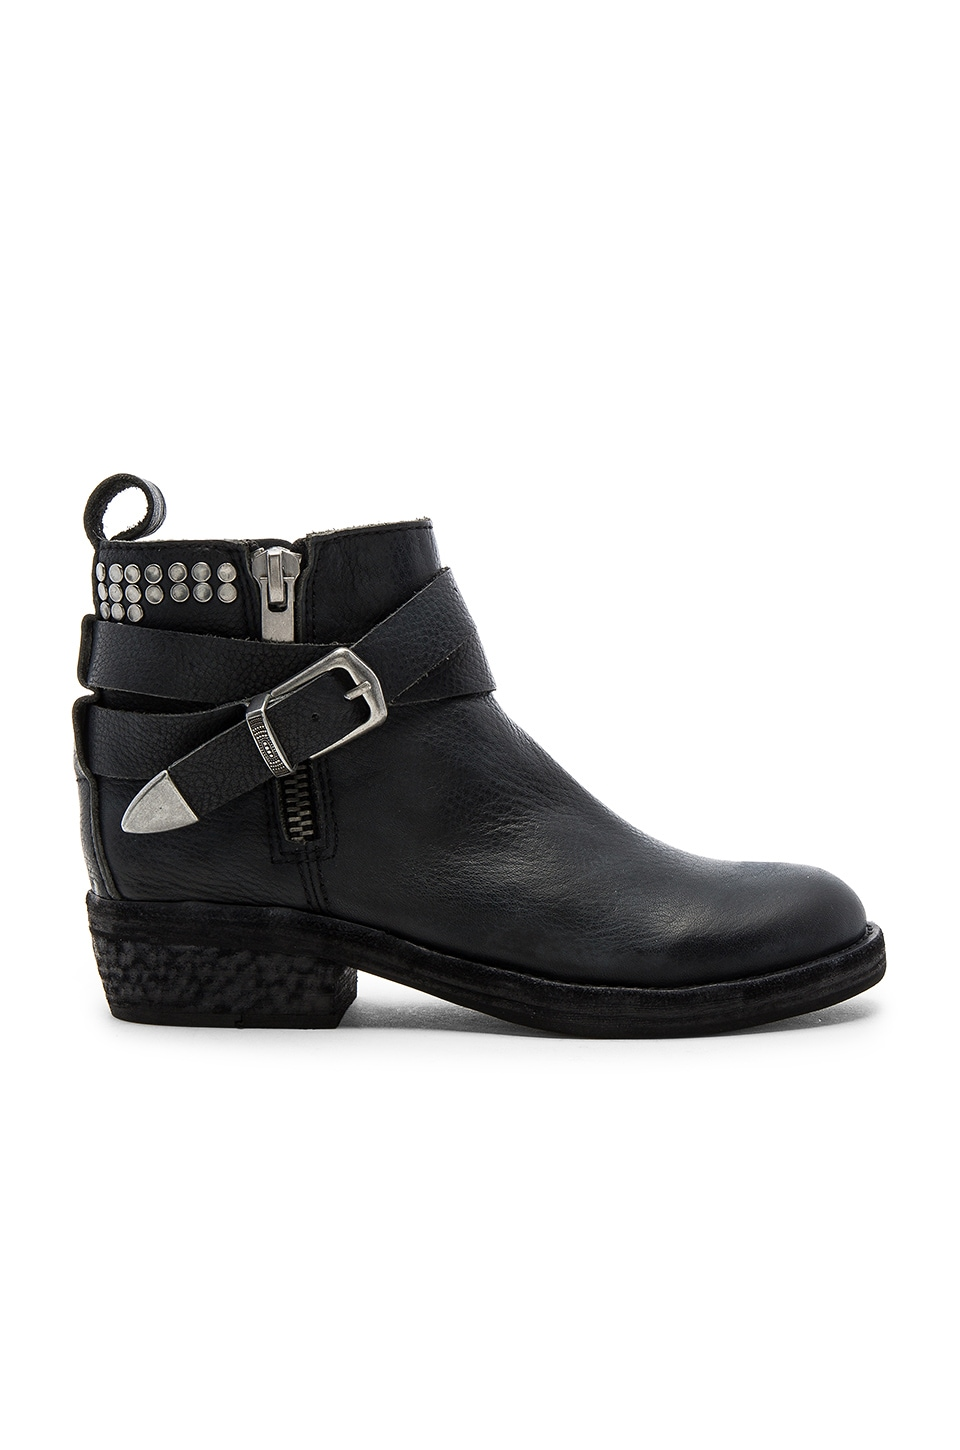 Joey Boot by Dolce Vita